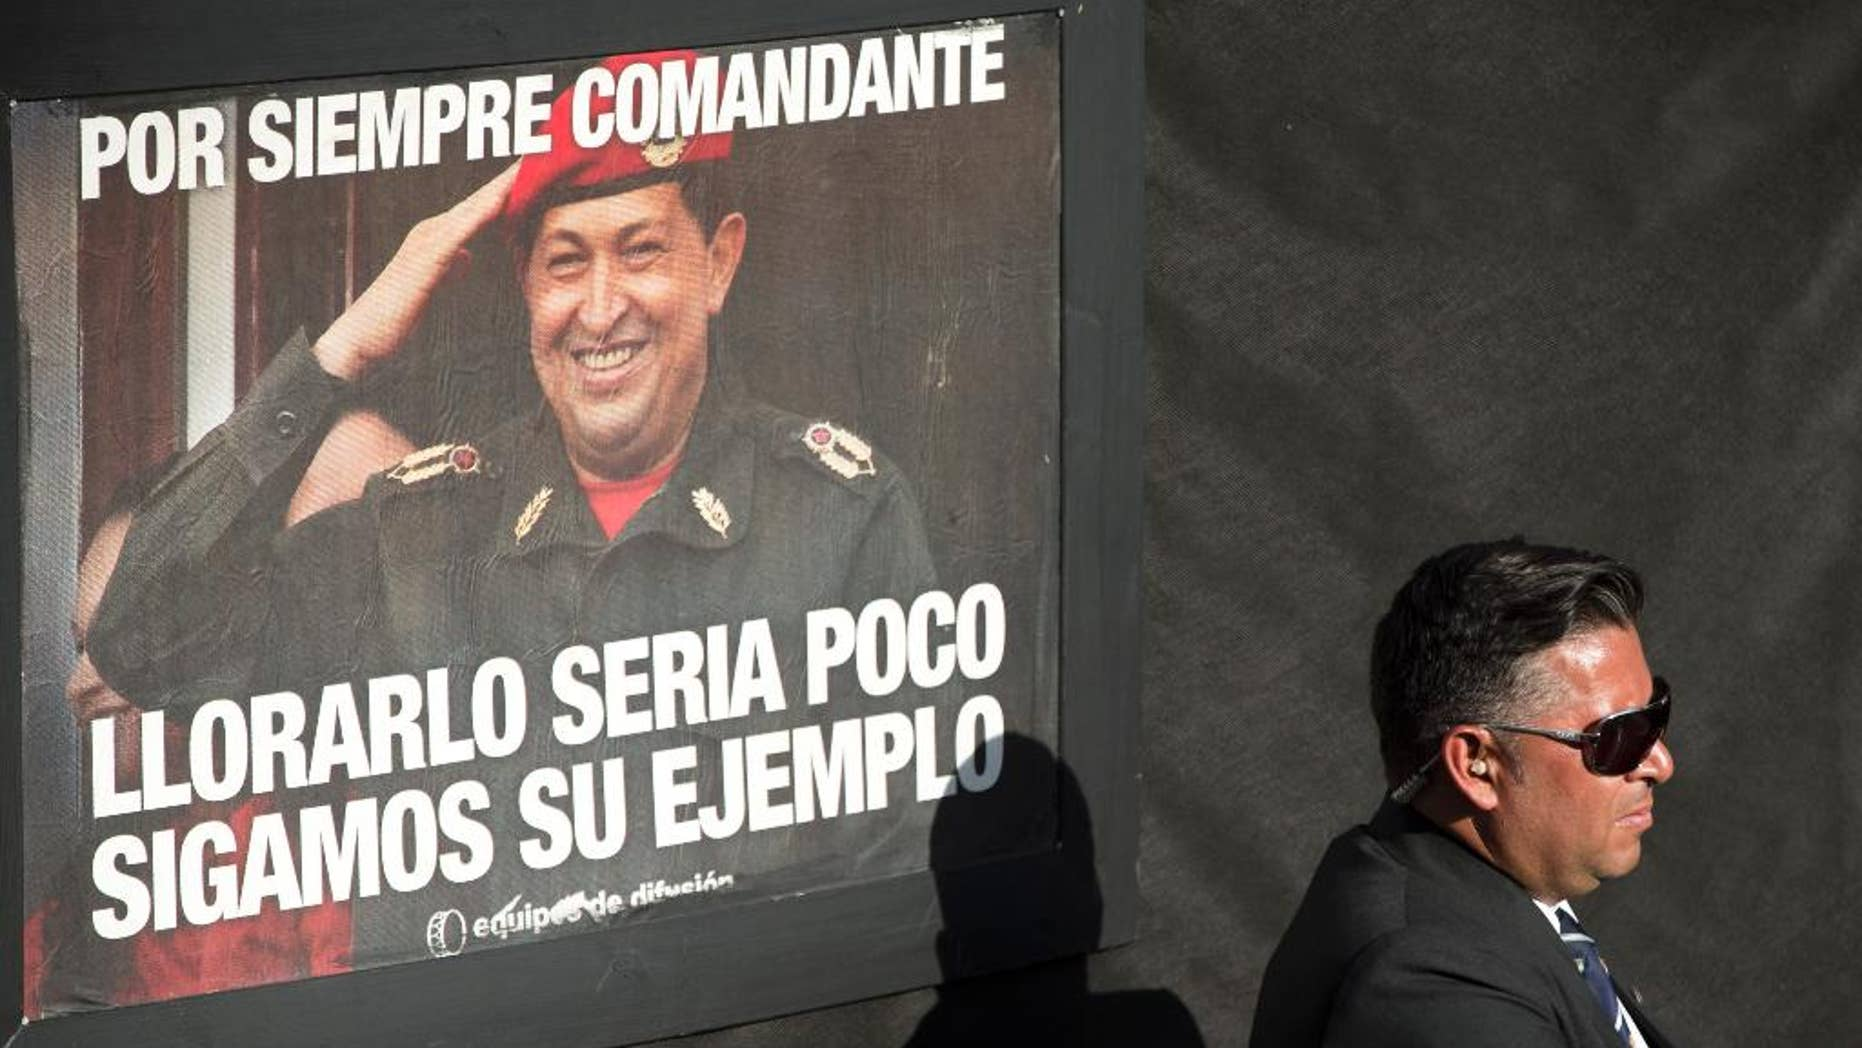 "A security officer stands guard near a poster of late Venezuelan President Hugo Chavez that reads in Spanish ""forever commander, crying for him is not enough, let's follow his example"", at mass at the Villa 21 slum in Buenos Aires, Argentina, Wednesday, March 5, 2014. Argentine President Cristina Fernandez attended the mass in honor of Chavez, one year after the Venezuelan leader's death. (AP Photo/Victor R. Caivano)"